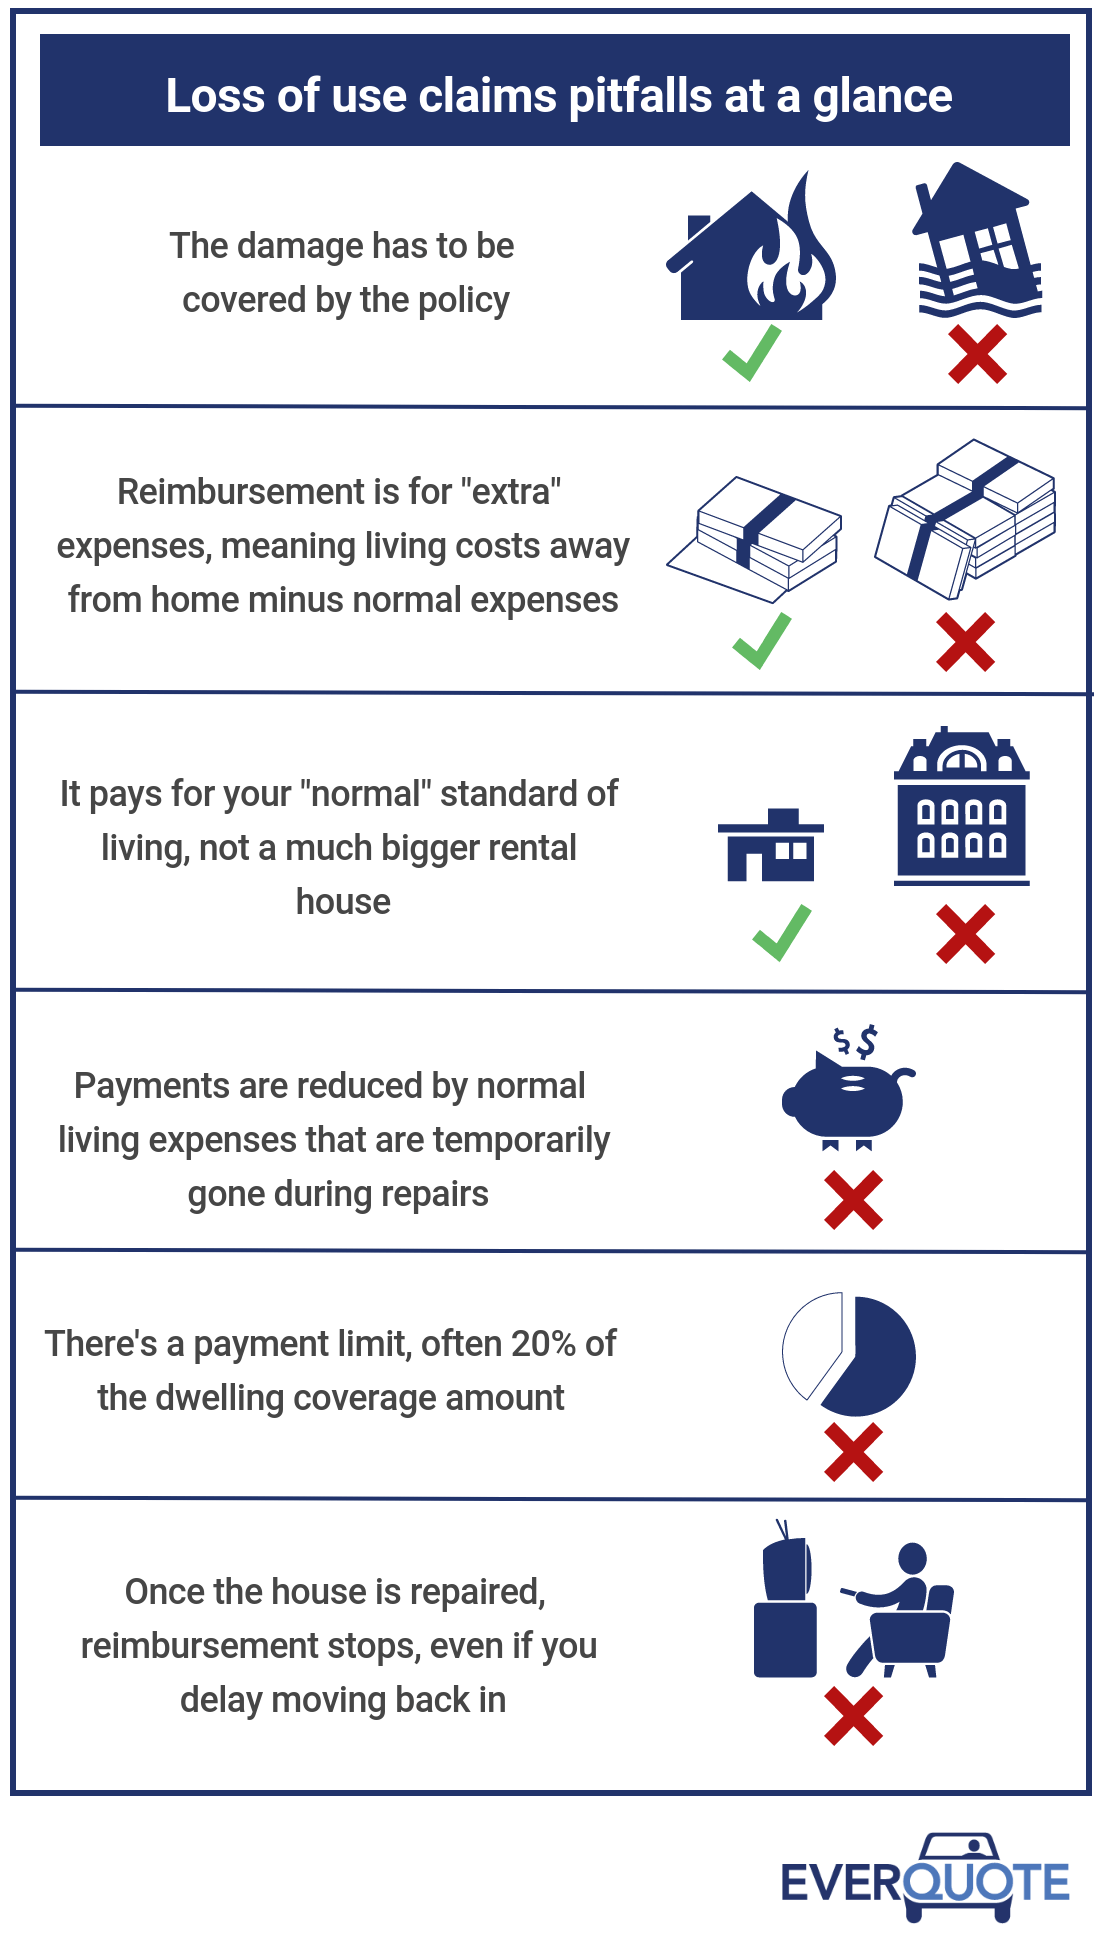 Loss of Use Coverage in Home Insurance: Know the Rules